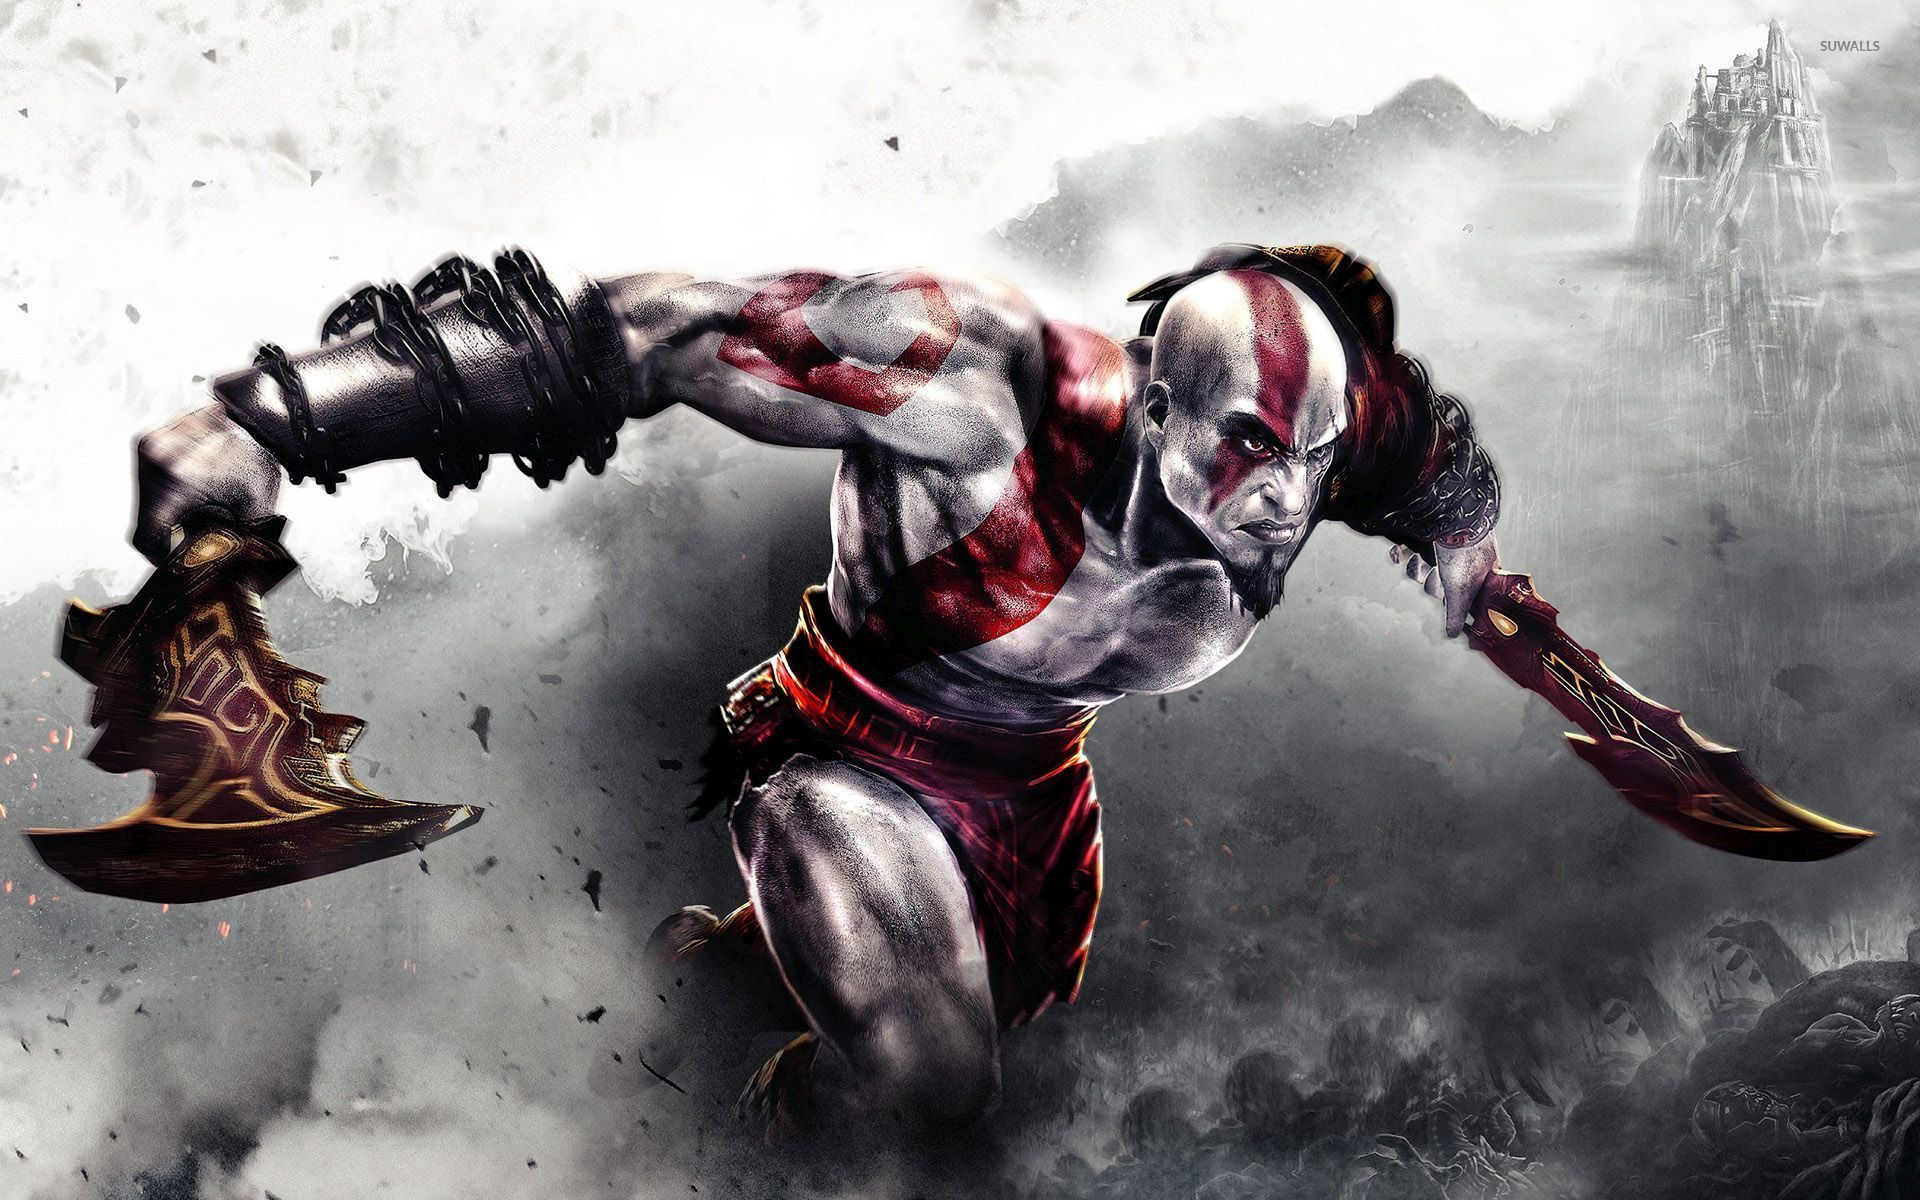 kratos with a sword - god of war wallpaper - game wallpapers - #54553